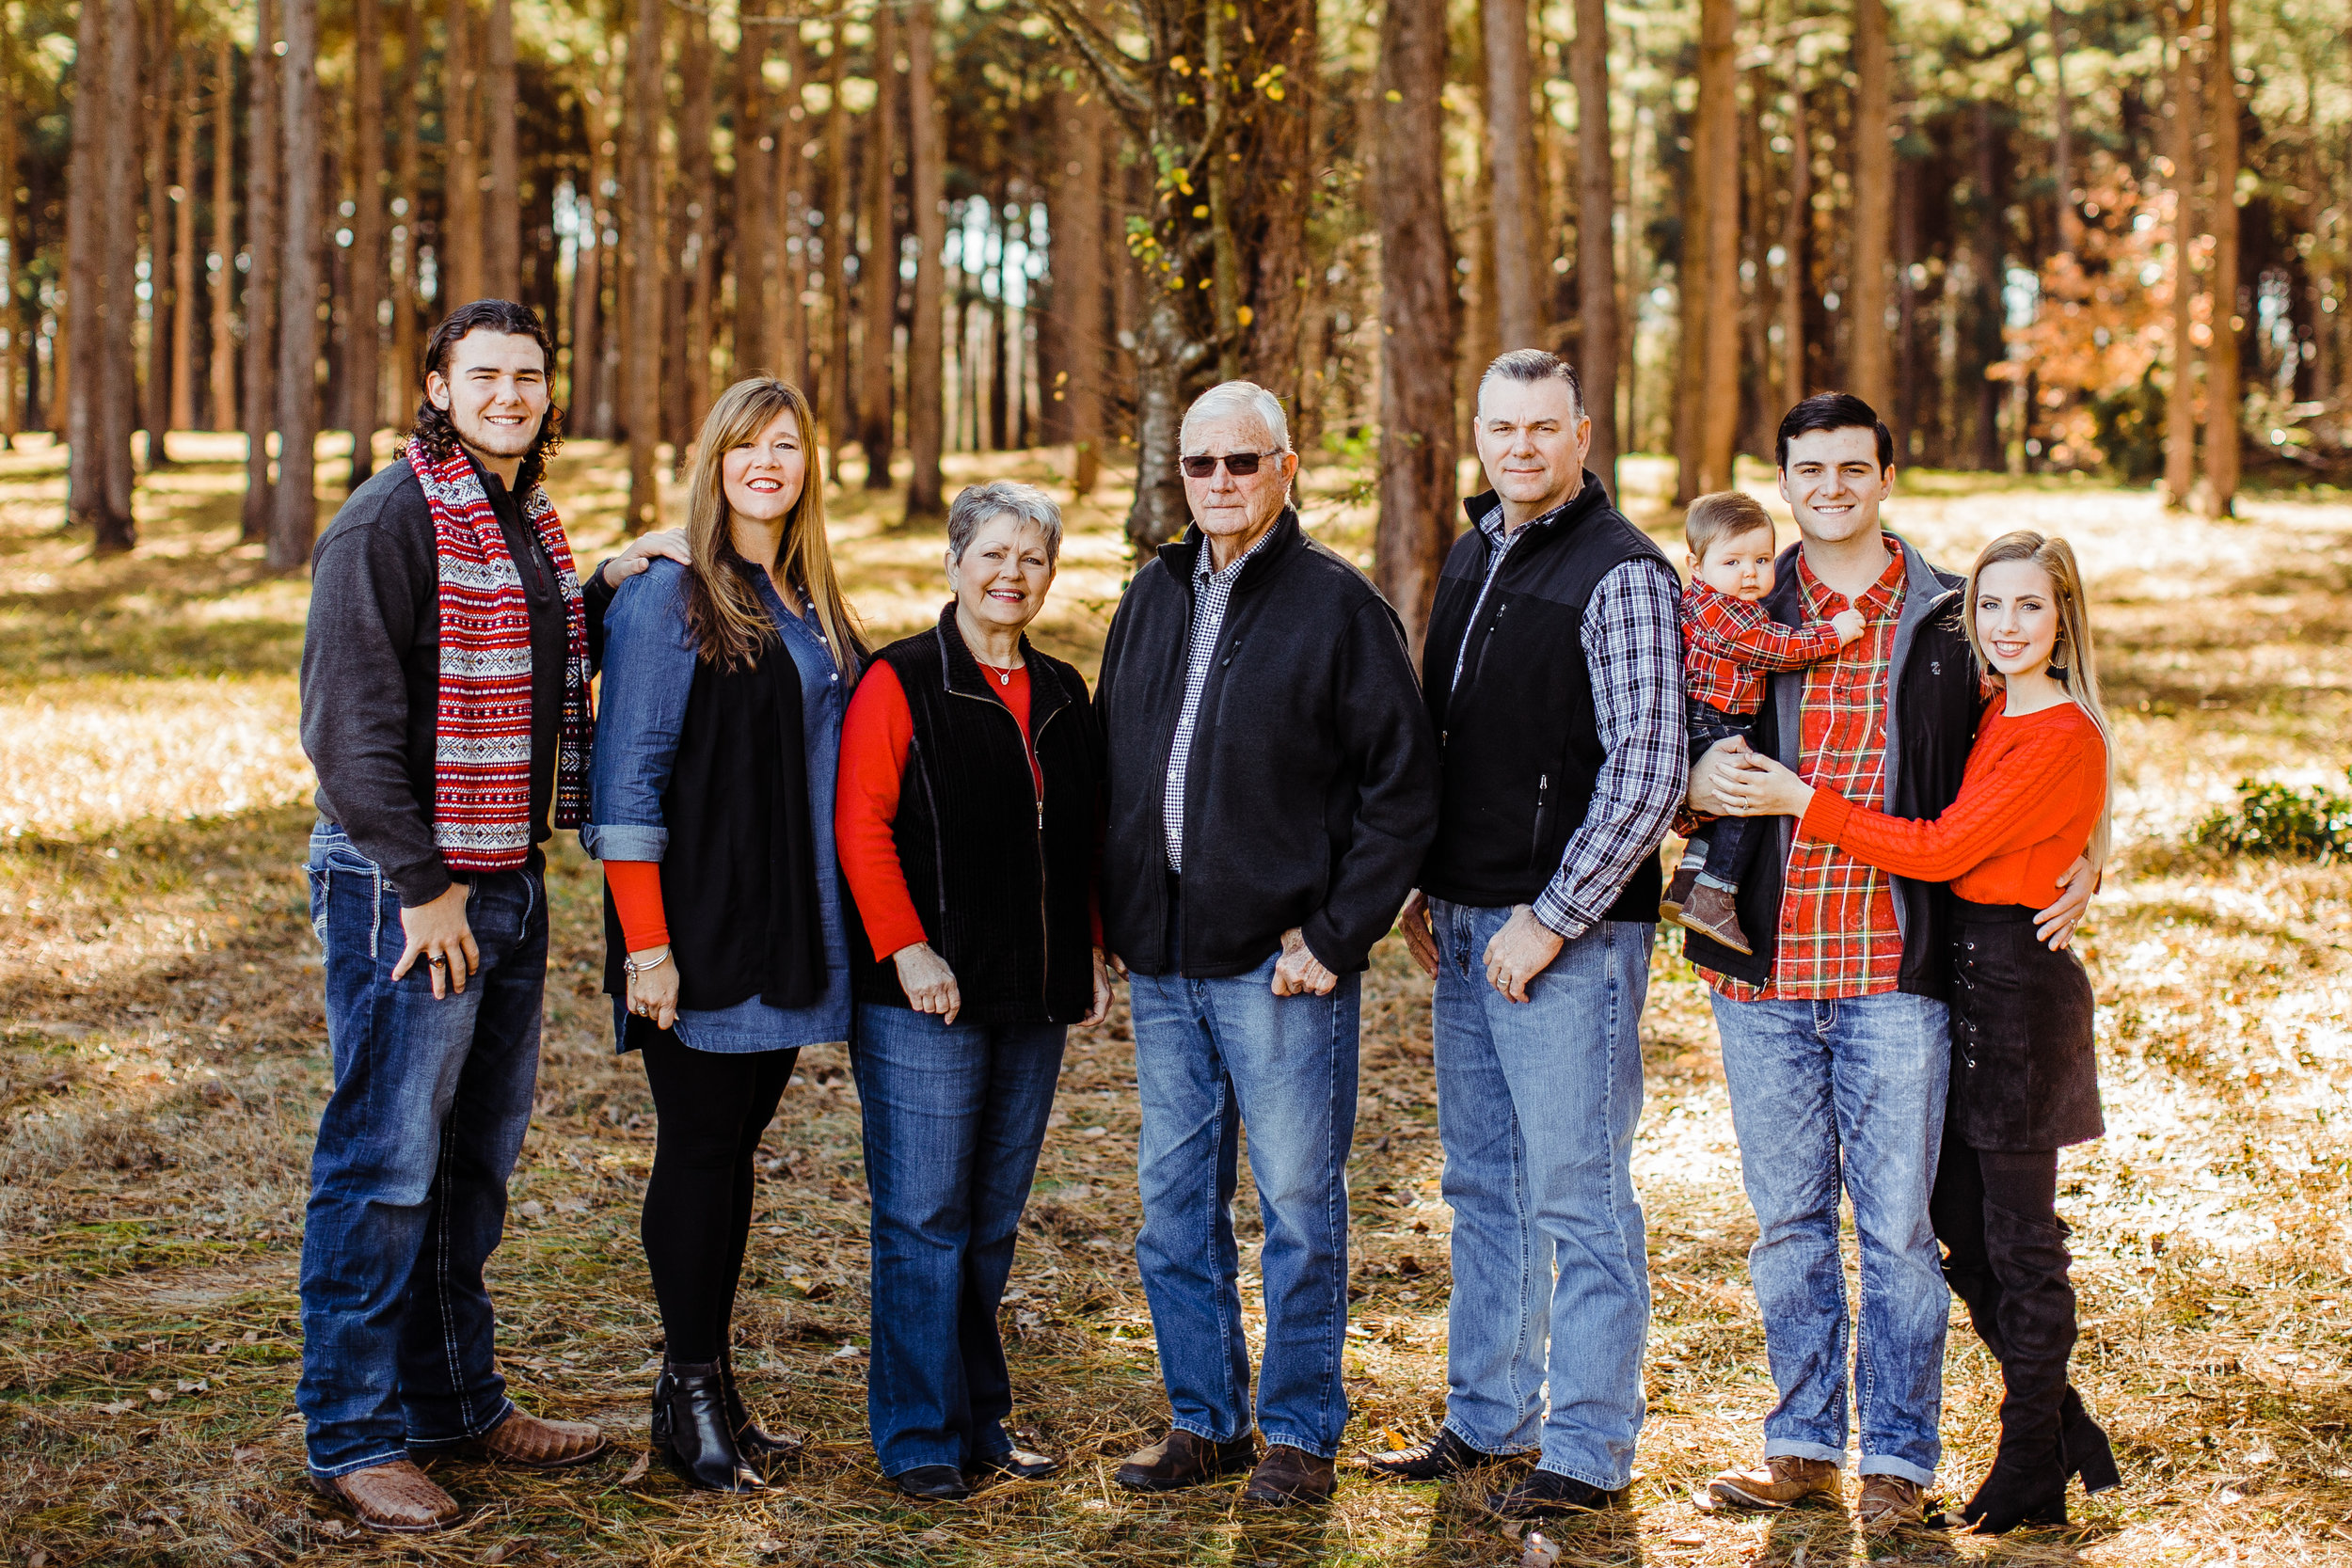 Donna and Jason with their immediate family: son, Christopher; parents, Chris and Don Moore; and son, Warren with his wife, Kaitlyn, and their son, Witten. (Photo by Colton Daffern Photography)